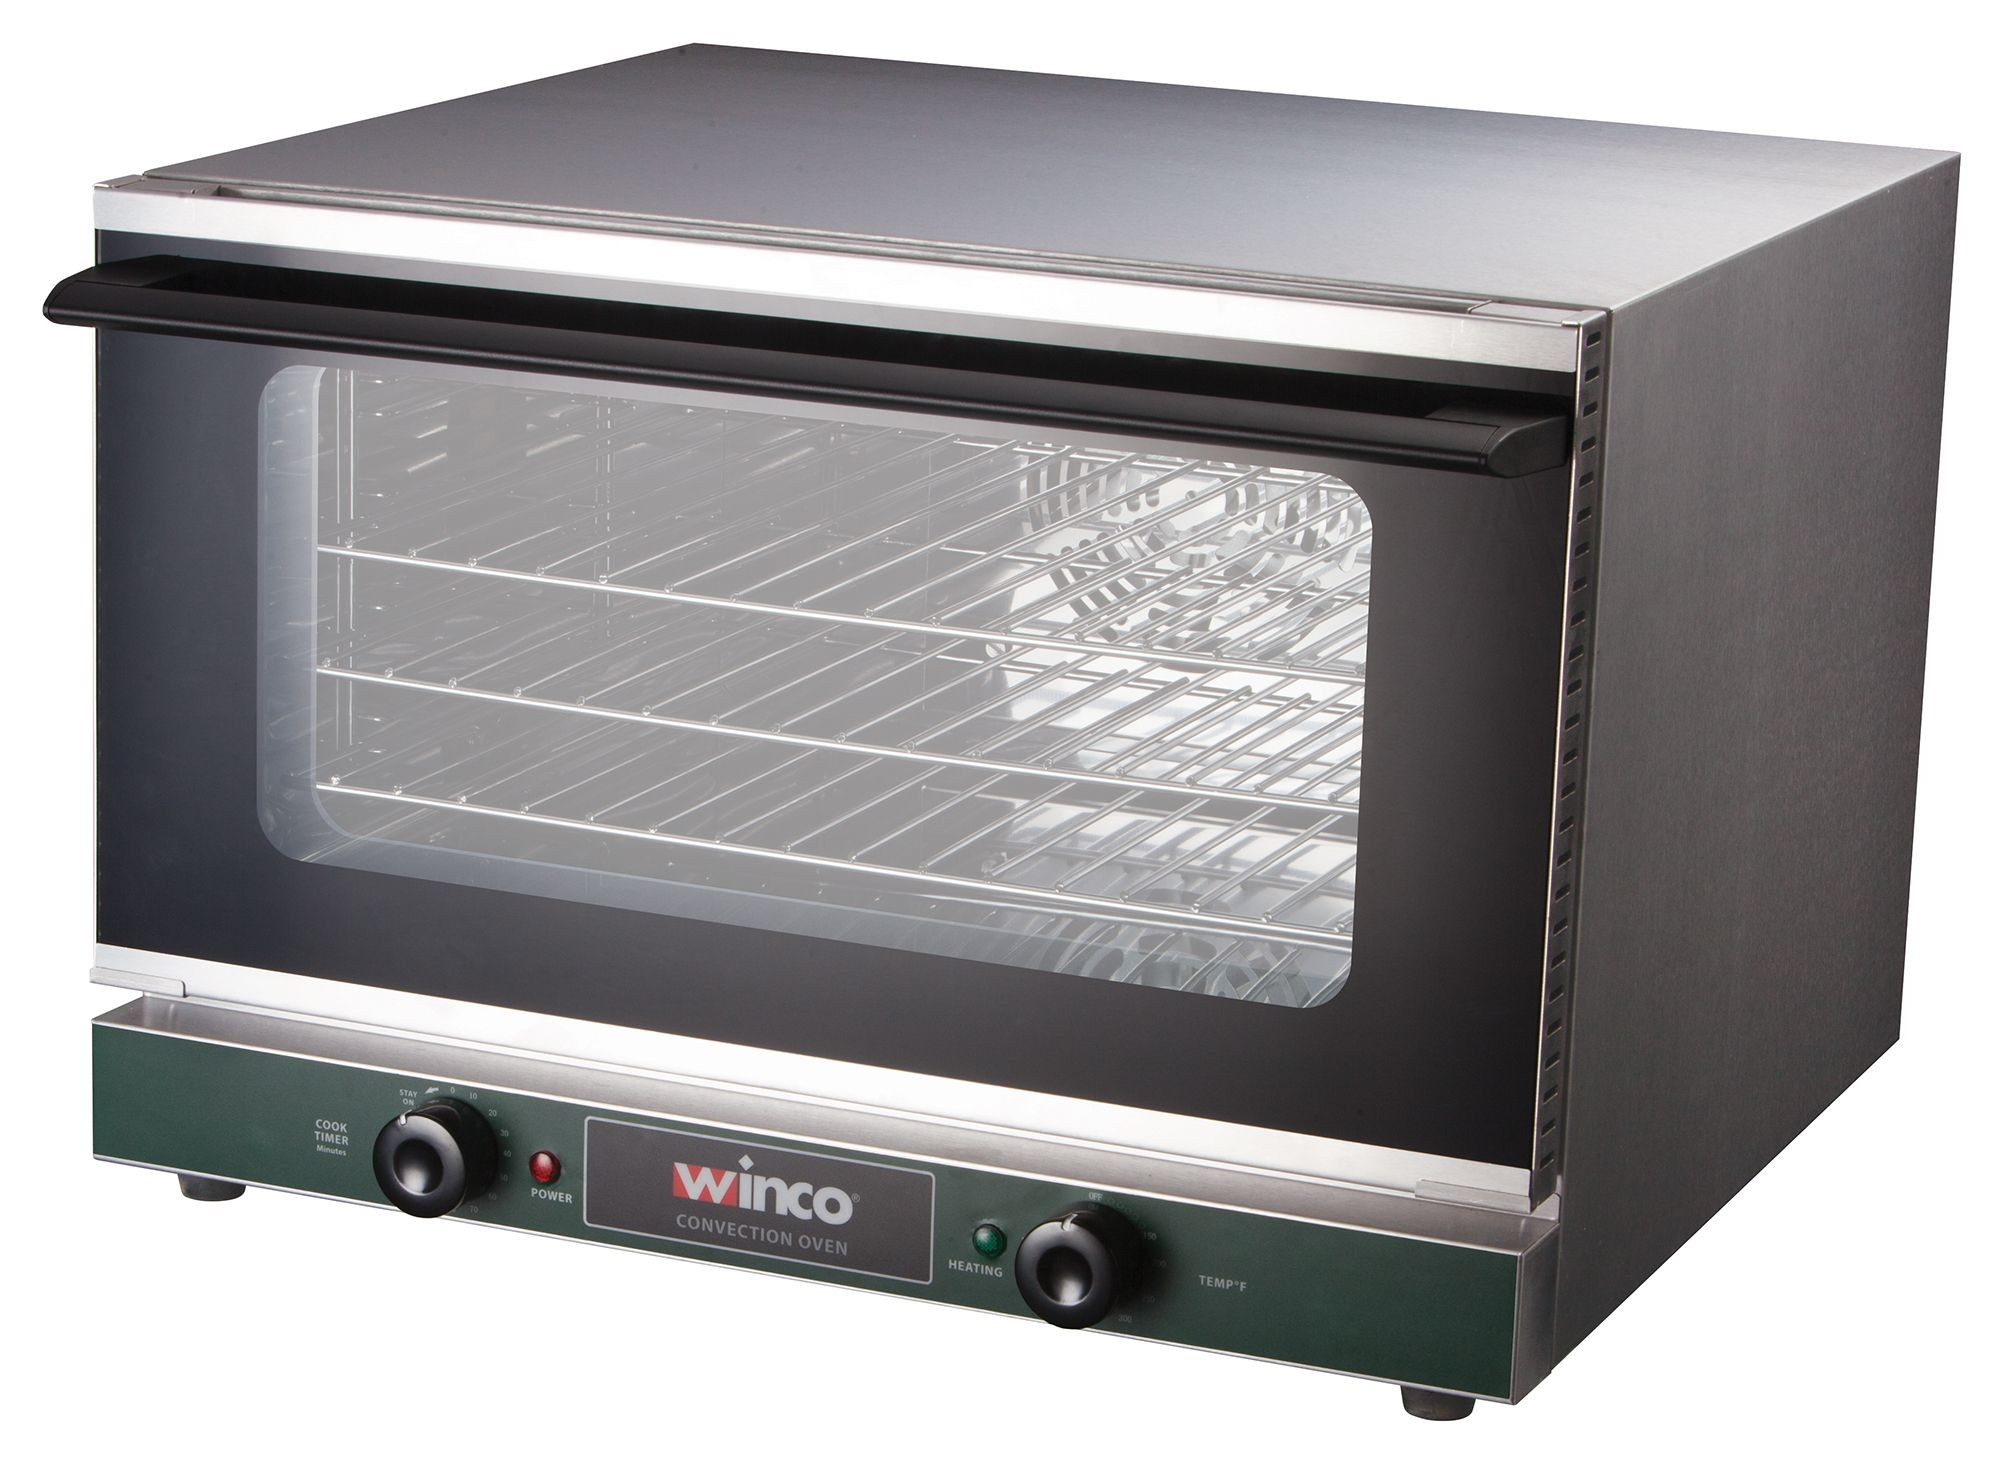 Winco ECO-500 Countertop Convection Oven, Half-Size